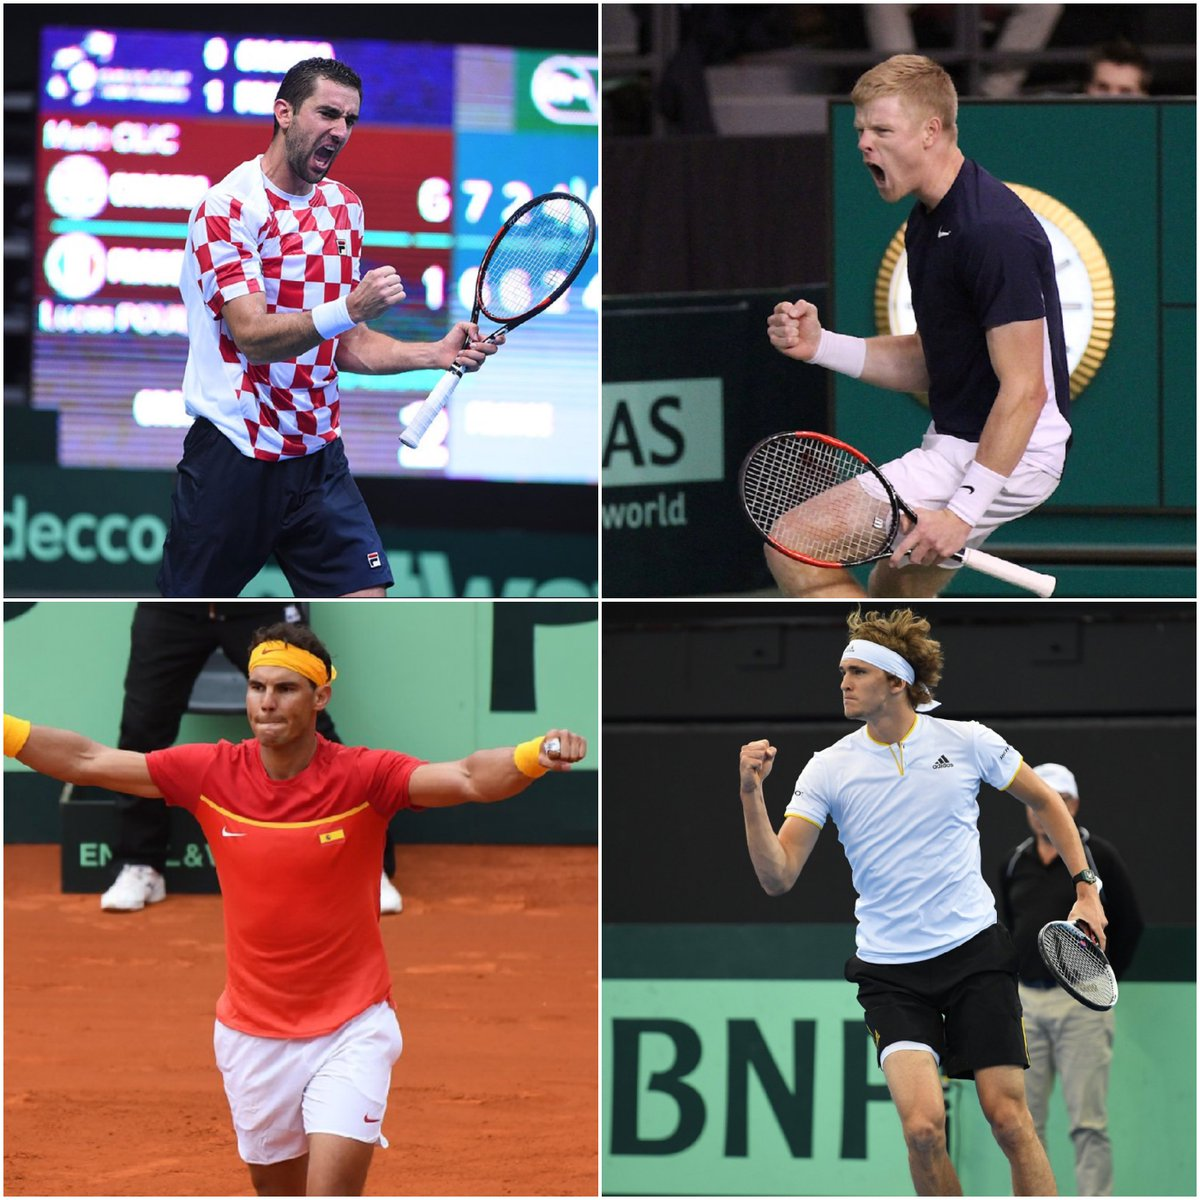 Will any of these #DavisCup stars win the #AusOpen? Action Down Under begins in six days 🇦🇺